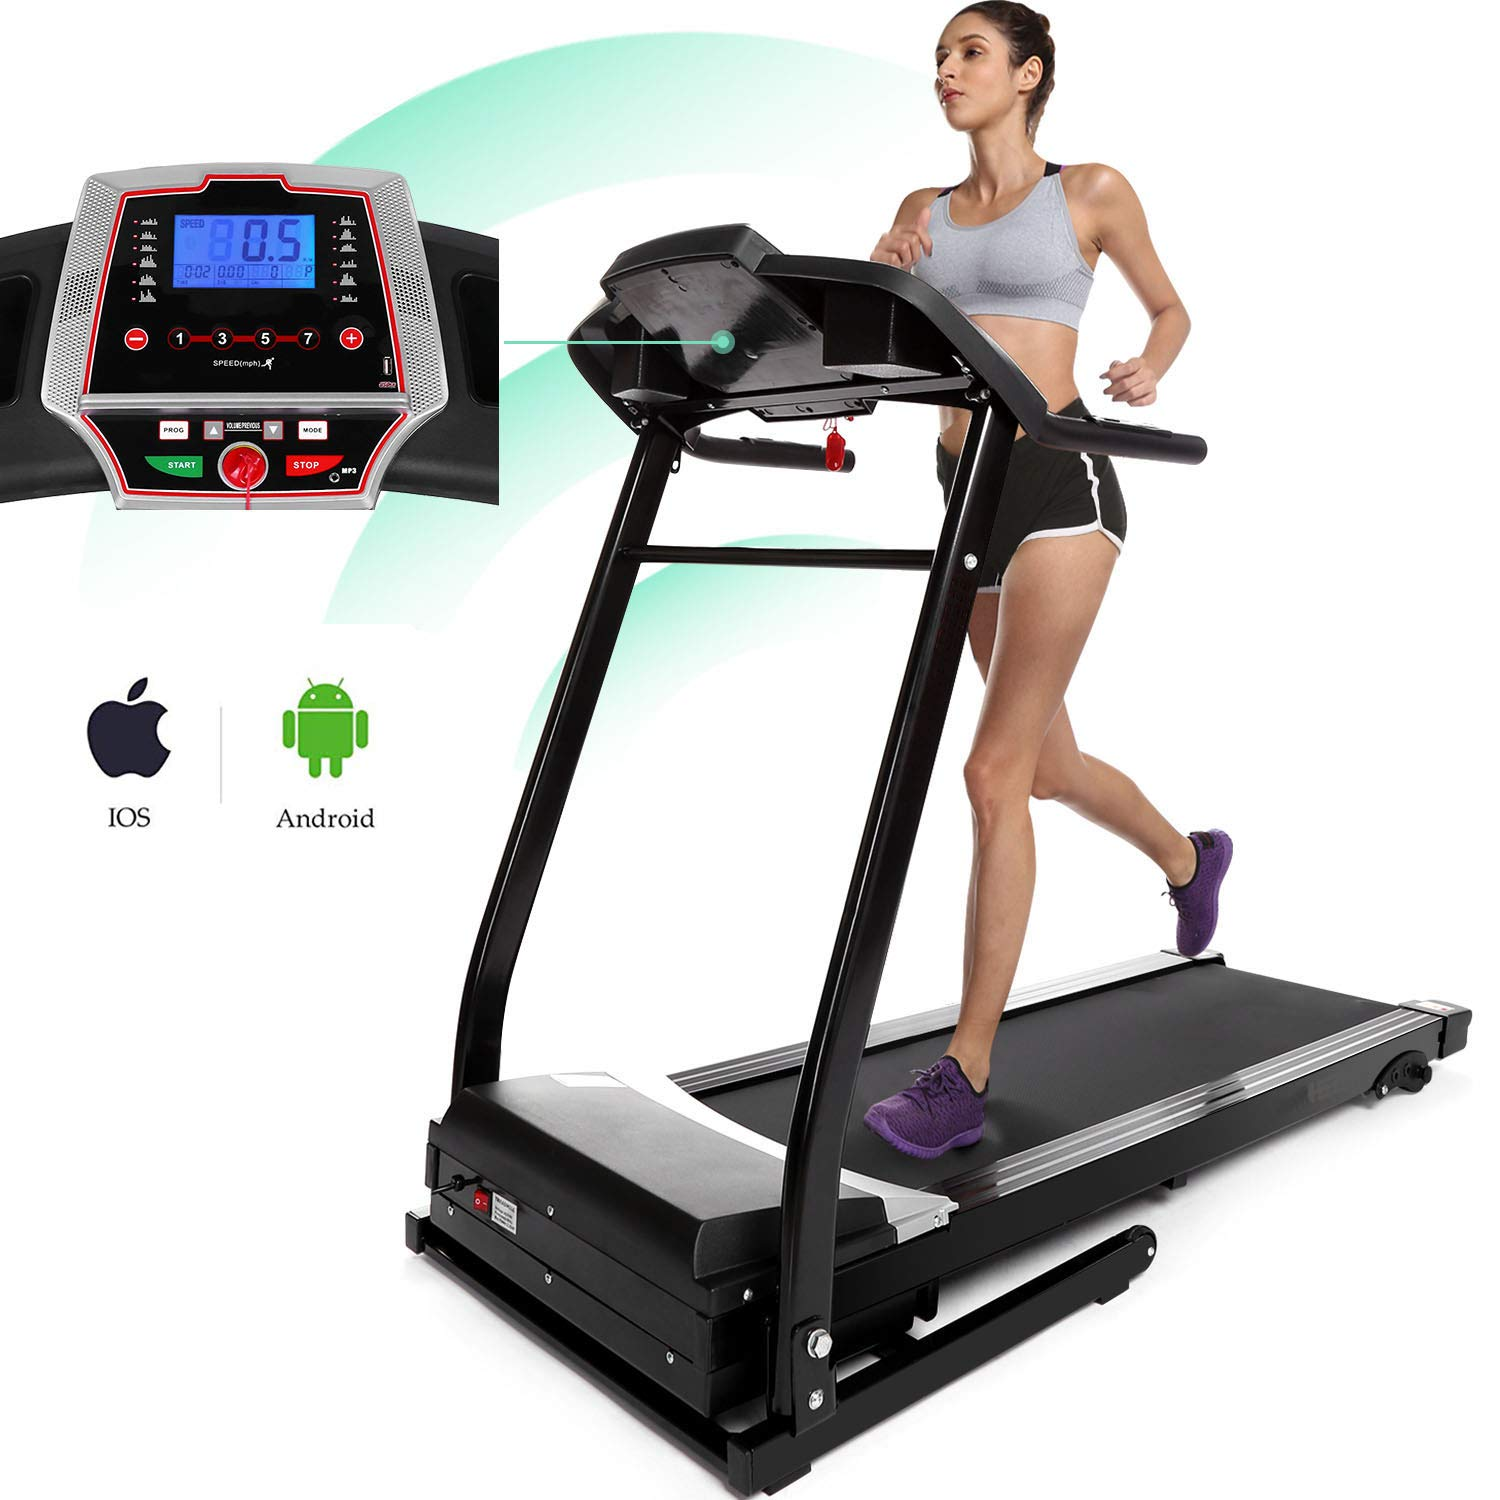 Miageek Fitness Folding Electric Jogging Treadmills with Smartphone APP Control, Walking Running Exercise Machine Incline Trainer Equipment Easy Assembly by Miageek (Image #8)